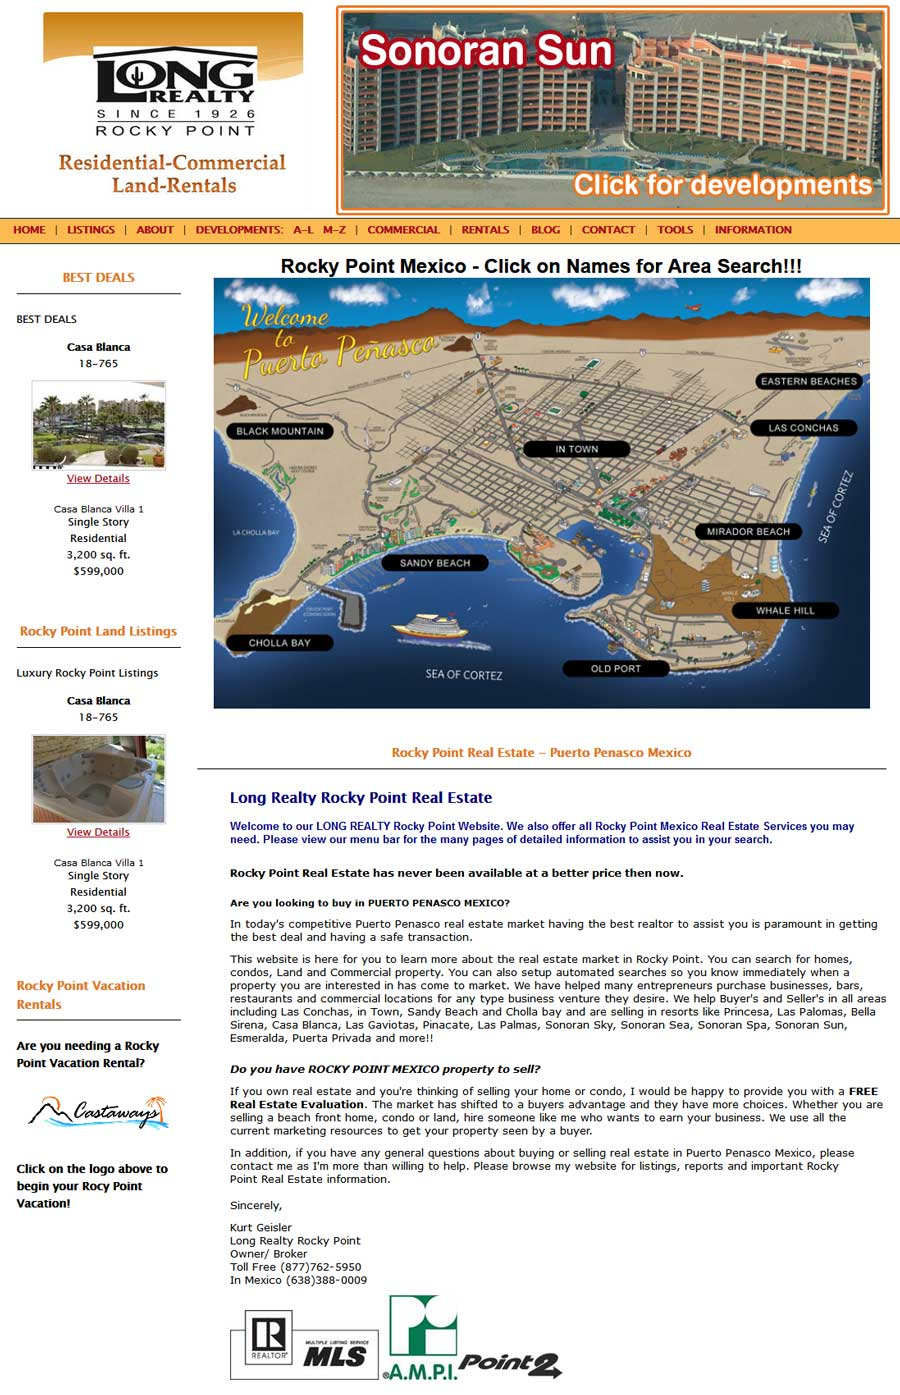 Long Realty, Real Estate in Rocky Point (Puerto Penasco). Click here to visit Long Realty's website